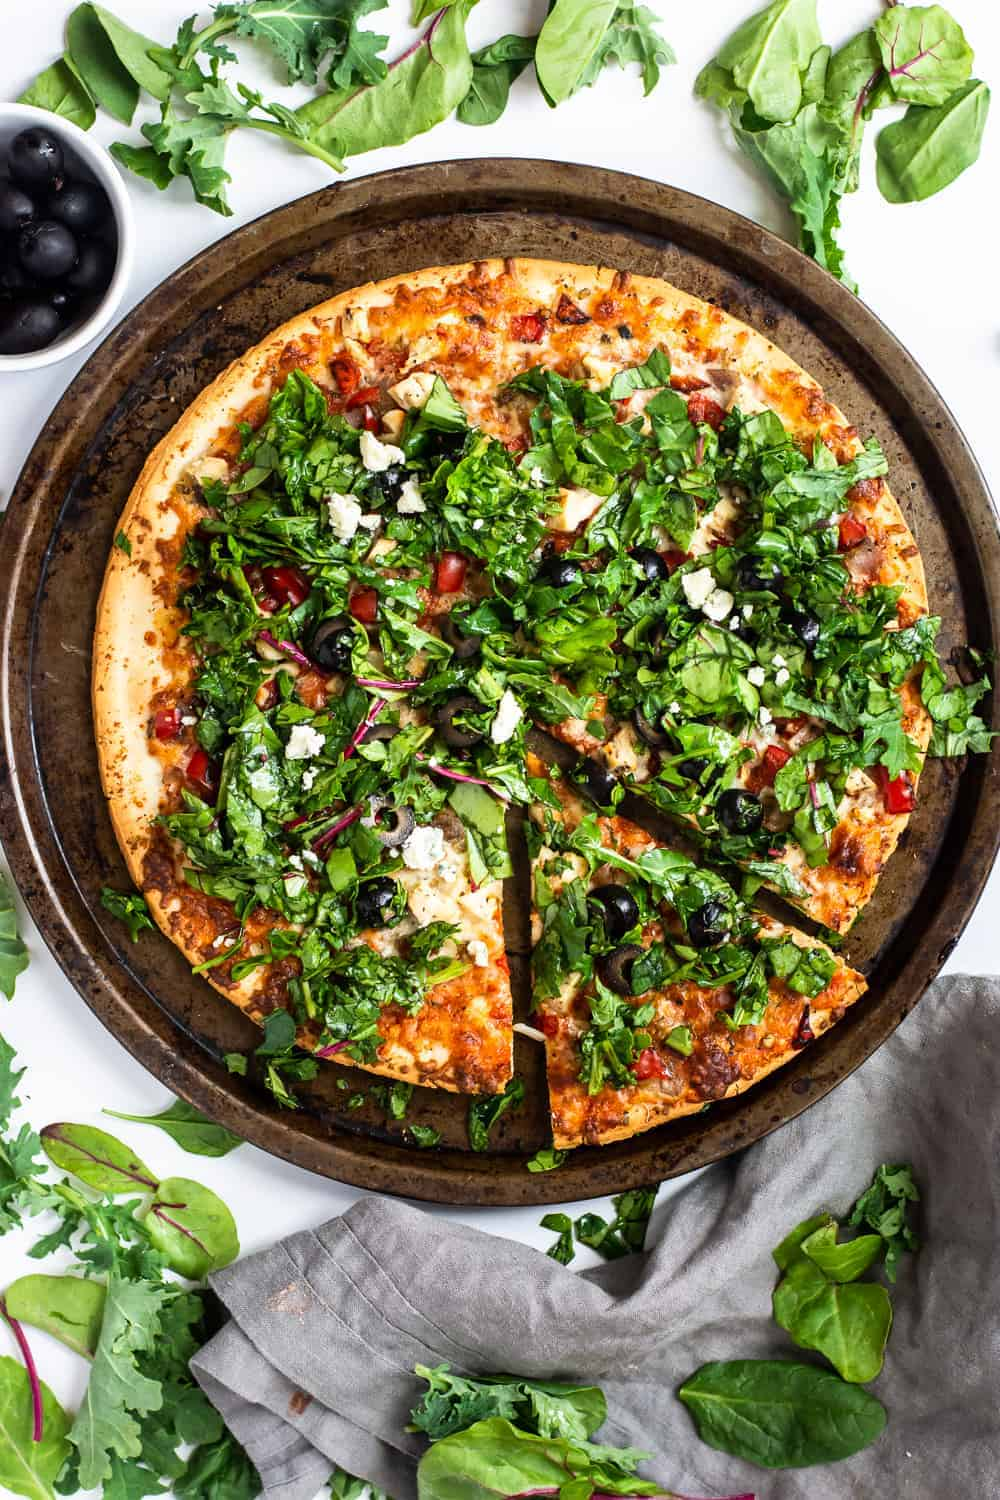 Easy Spinach and Tuscan Chicken Chopped Salad Pizza (Gluten Free)